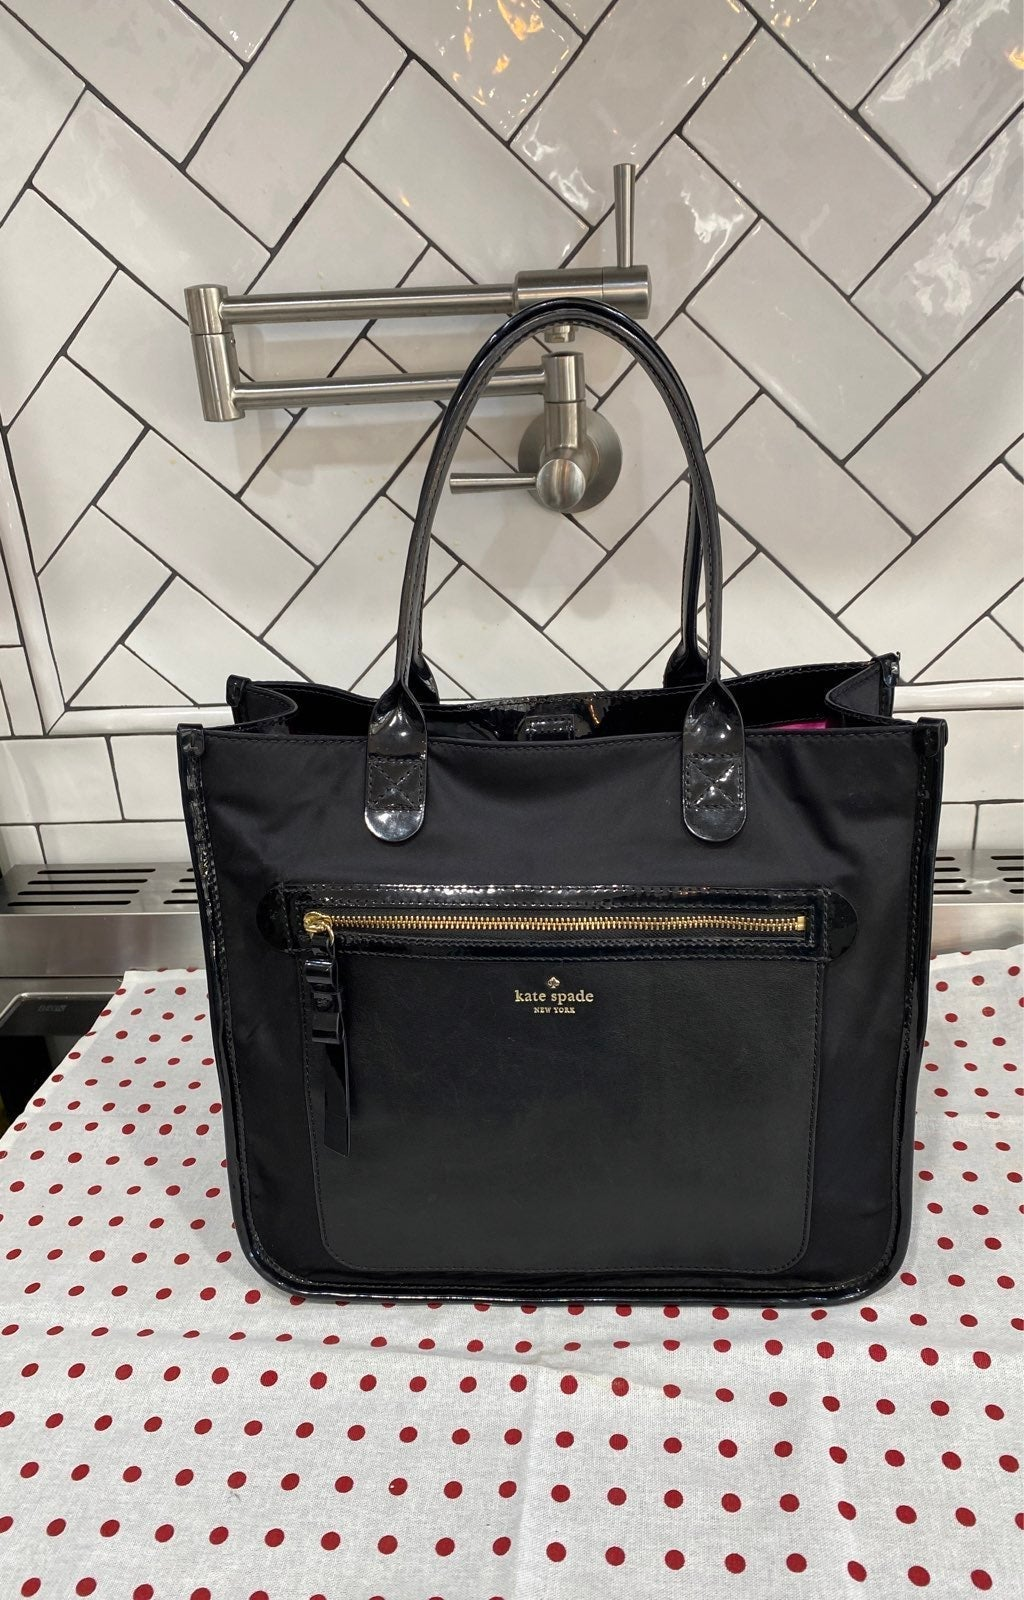 Kate Spade New York Black Tote Bag